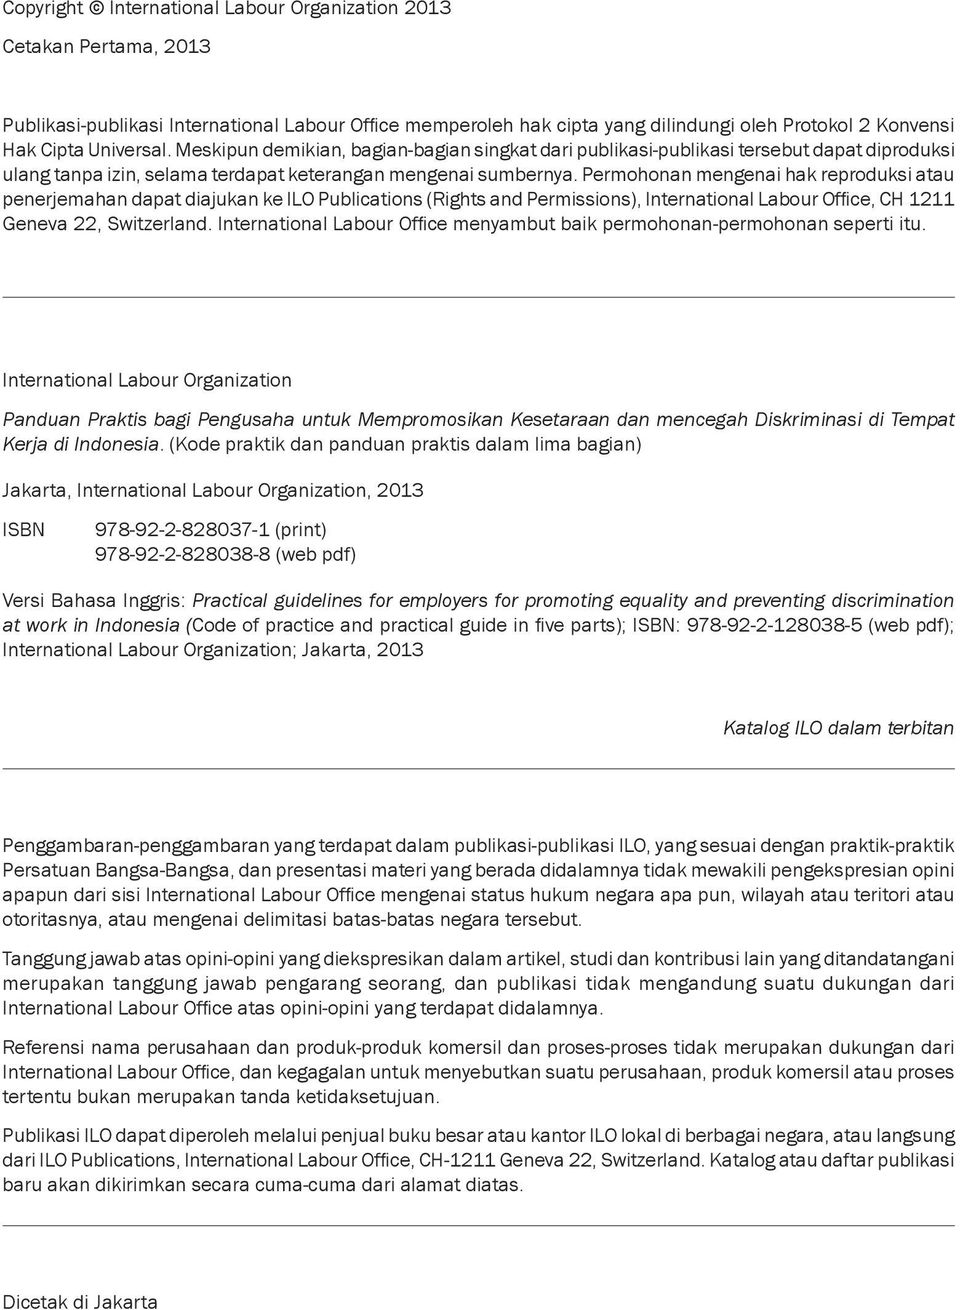 Permohonan mengenai hak reproduksi atau penerjemahan dapat diajukan ke ILO Publications (Rights and Permissions), International Labour Office, CH 1211 Geneva 22, Switzerland.